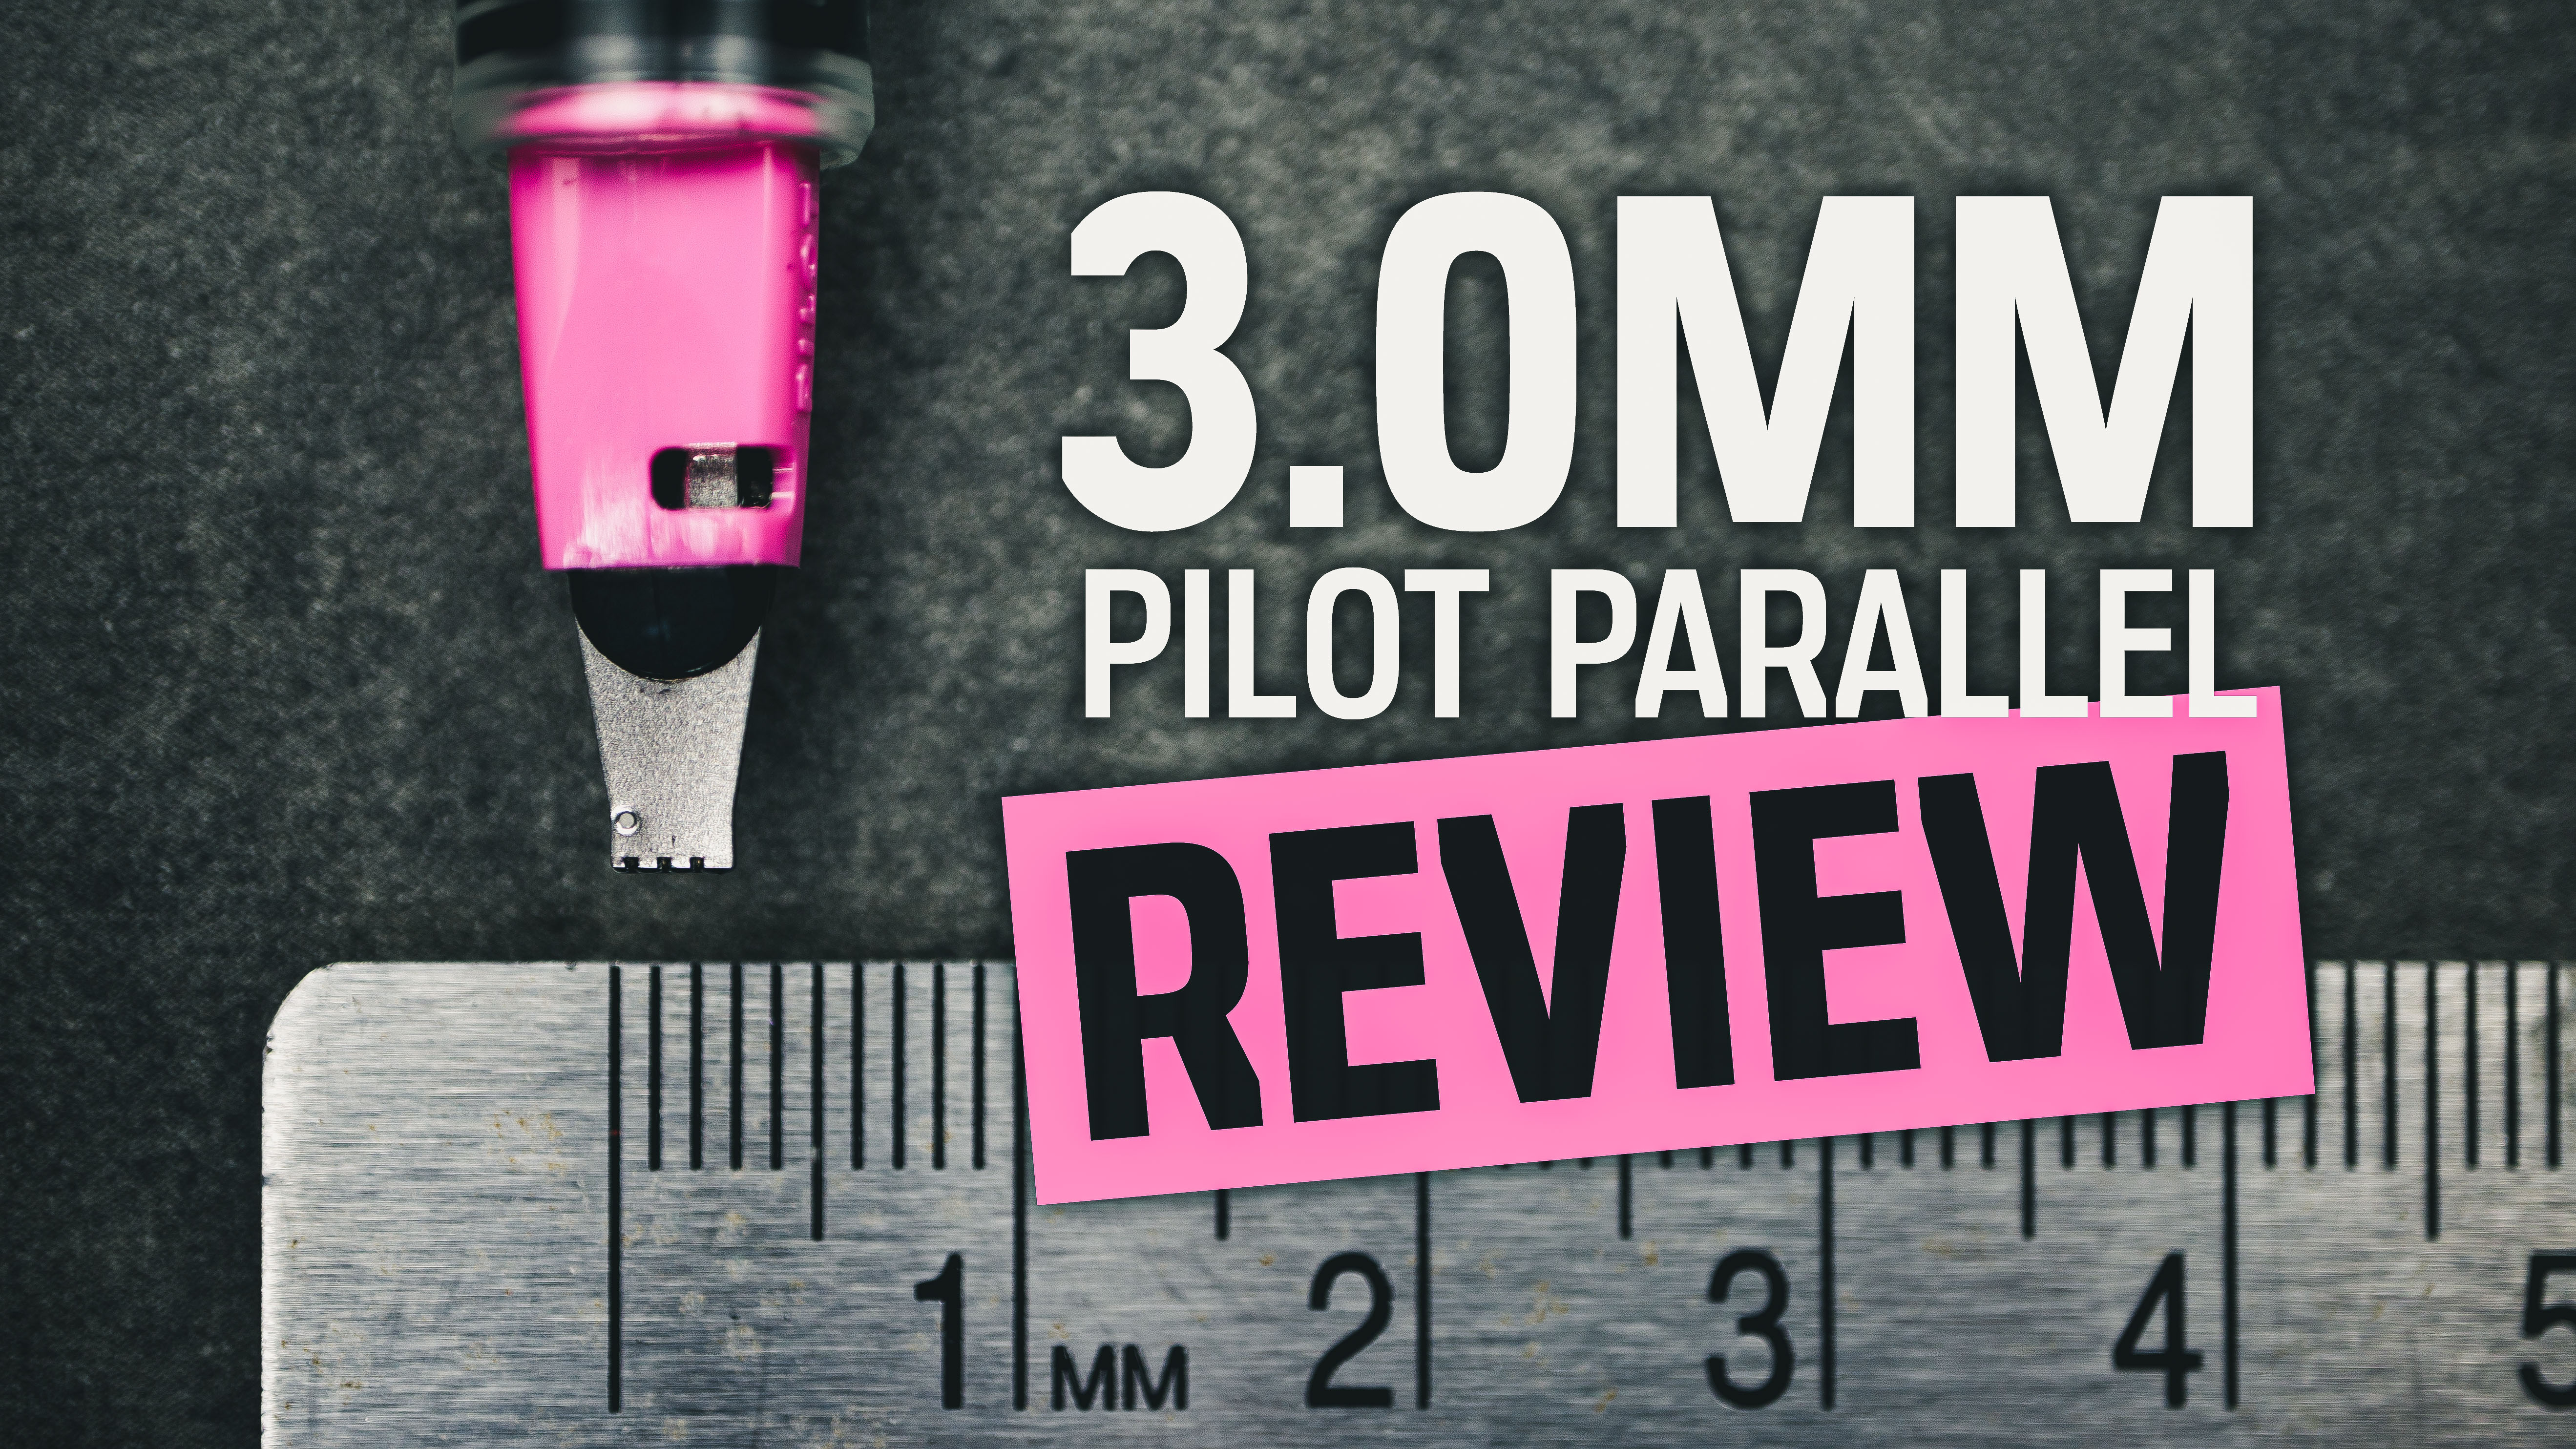 New 3mm pink Pilot Parallel pen review title with metal ruler and granite background